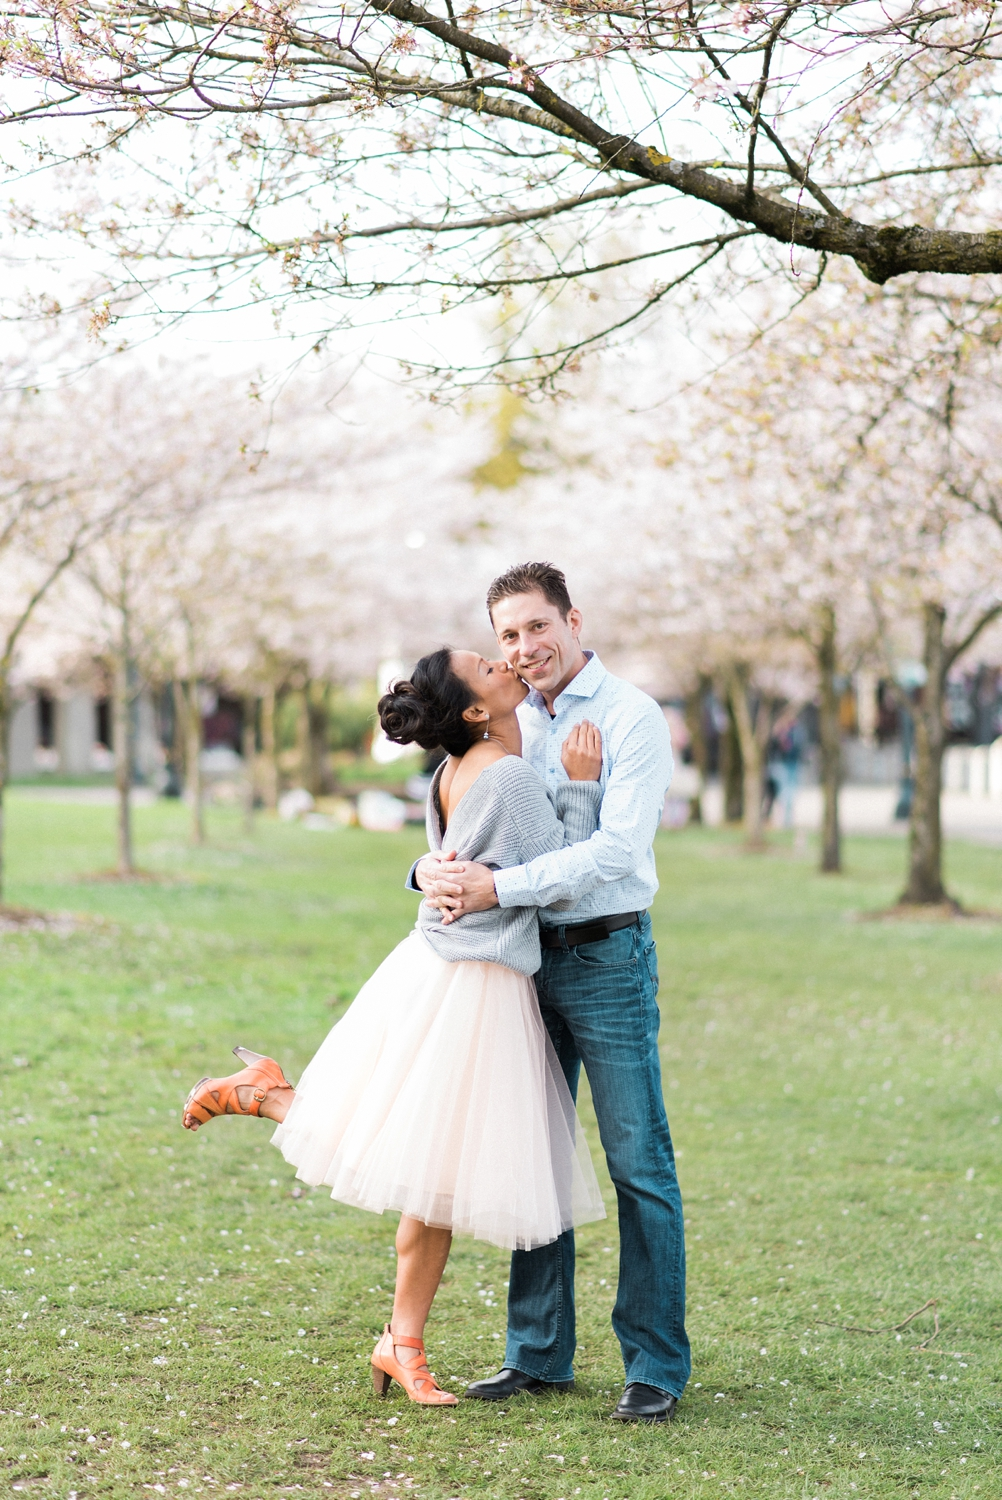 portland-waterfront-engagement-cherry-blossom-cathedral-park-sokhorn-jay-010_cr.jpg